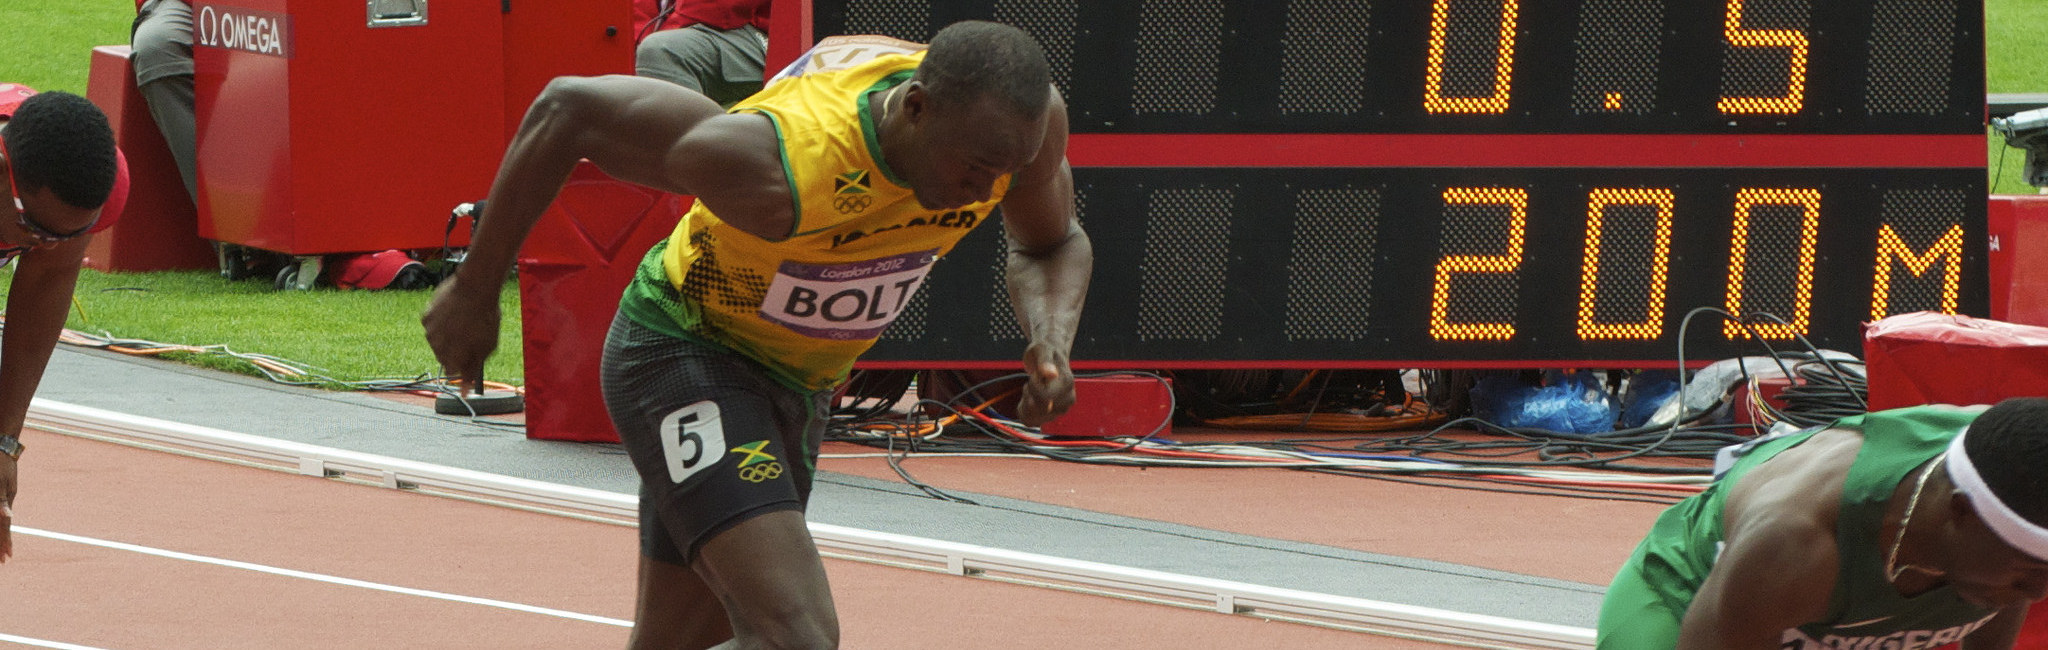 Bolt, Among Few Redeeming Lights in Discipline Marred by Scandals, Leaves